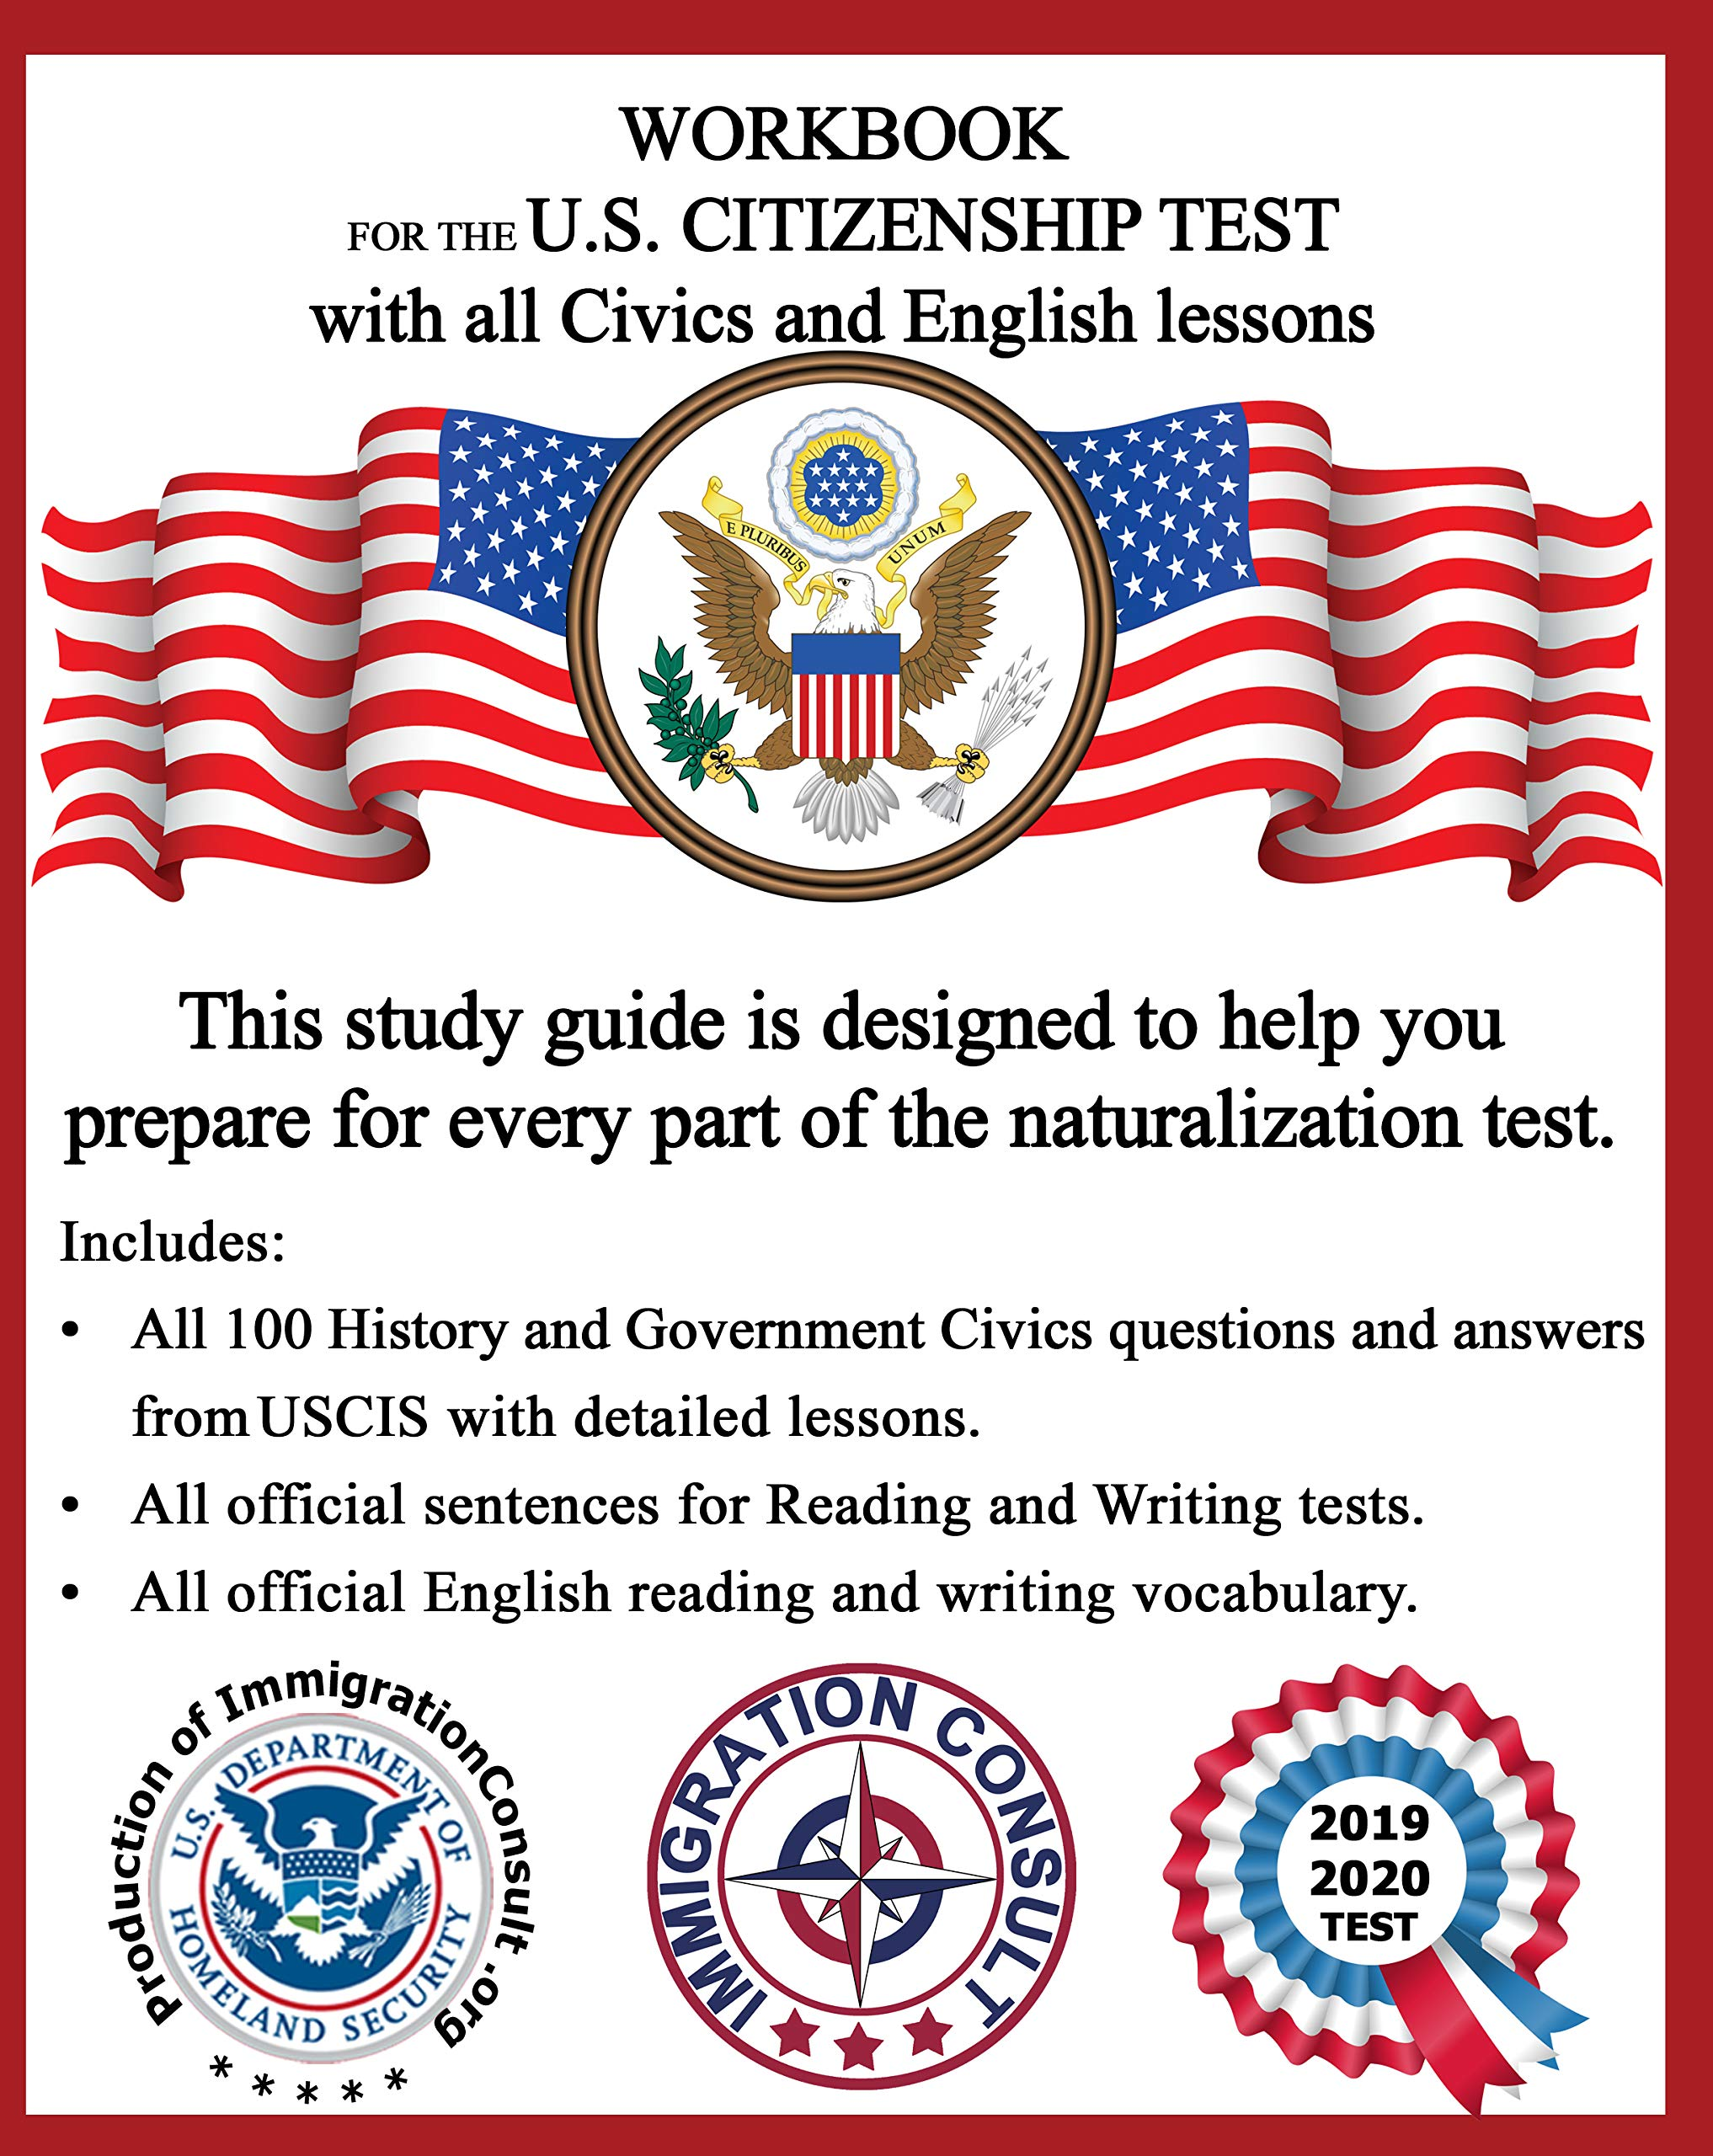 Workbook For The US Citizenship Test With All Civics And English Test Lessons  2018 2021 Study Guide With All Official USCIS Civics Questions And Answers ... The Naturalization Exam  English Edition